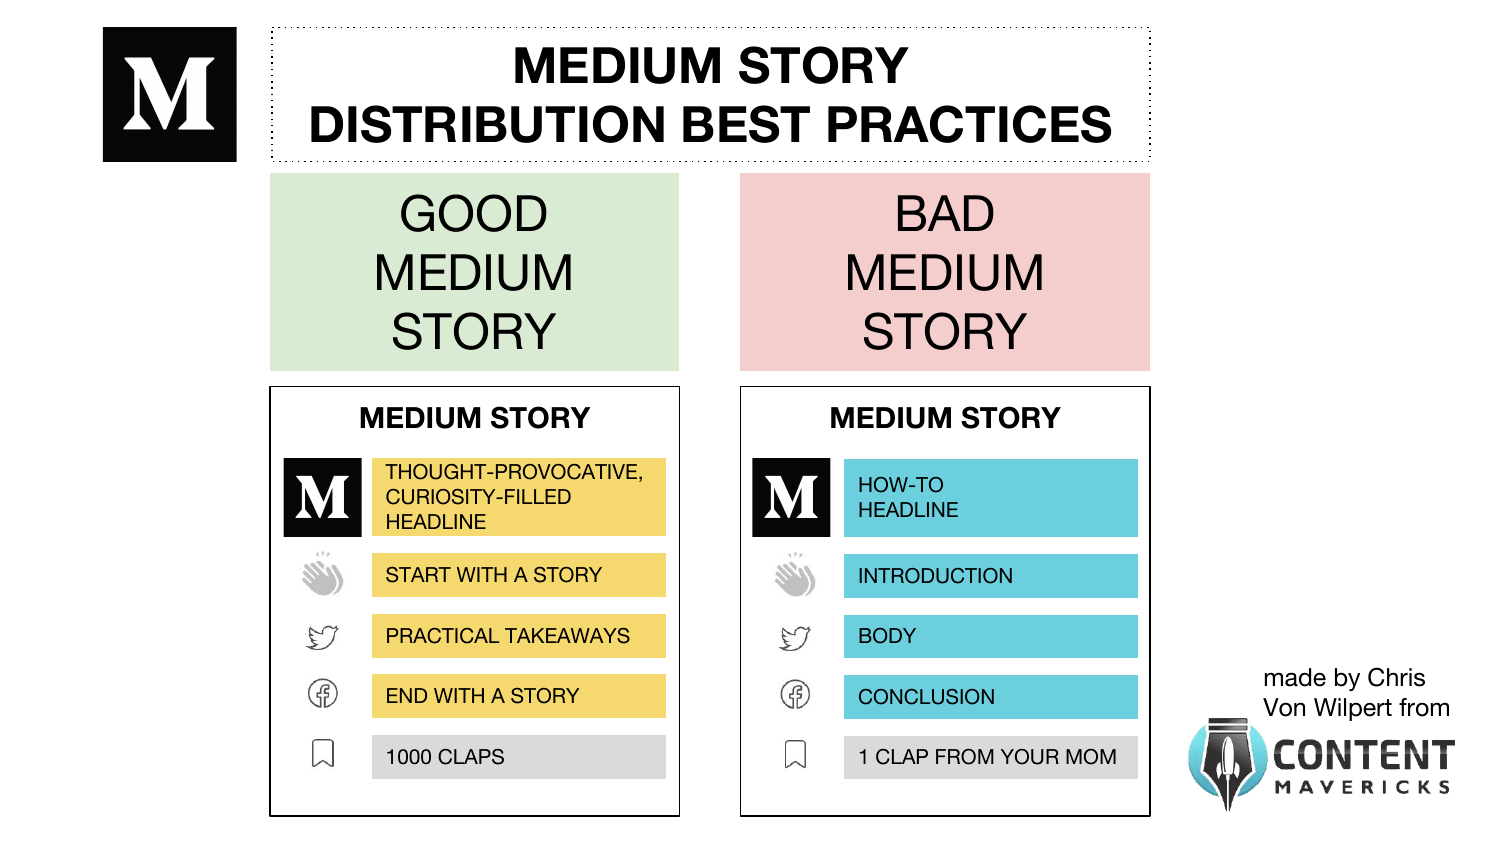 medium story content distribution best practices